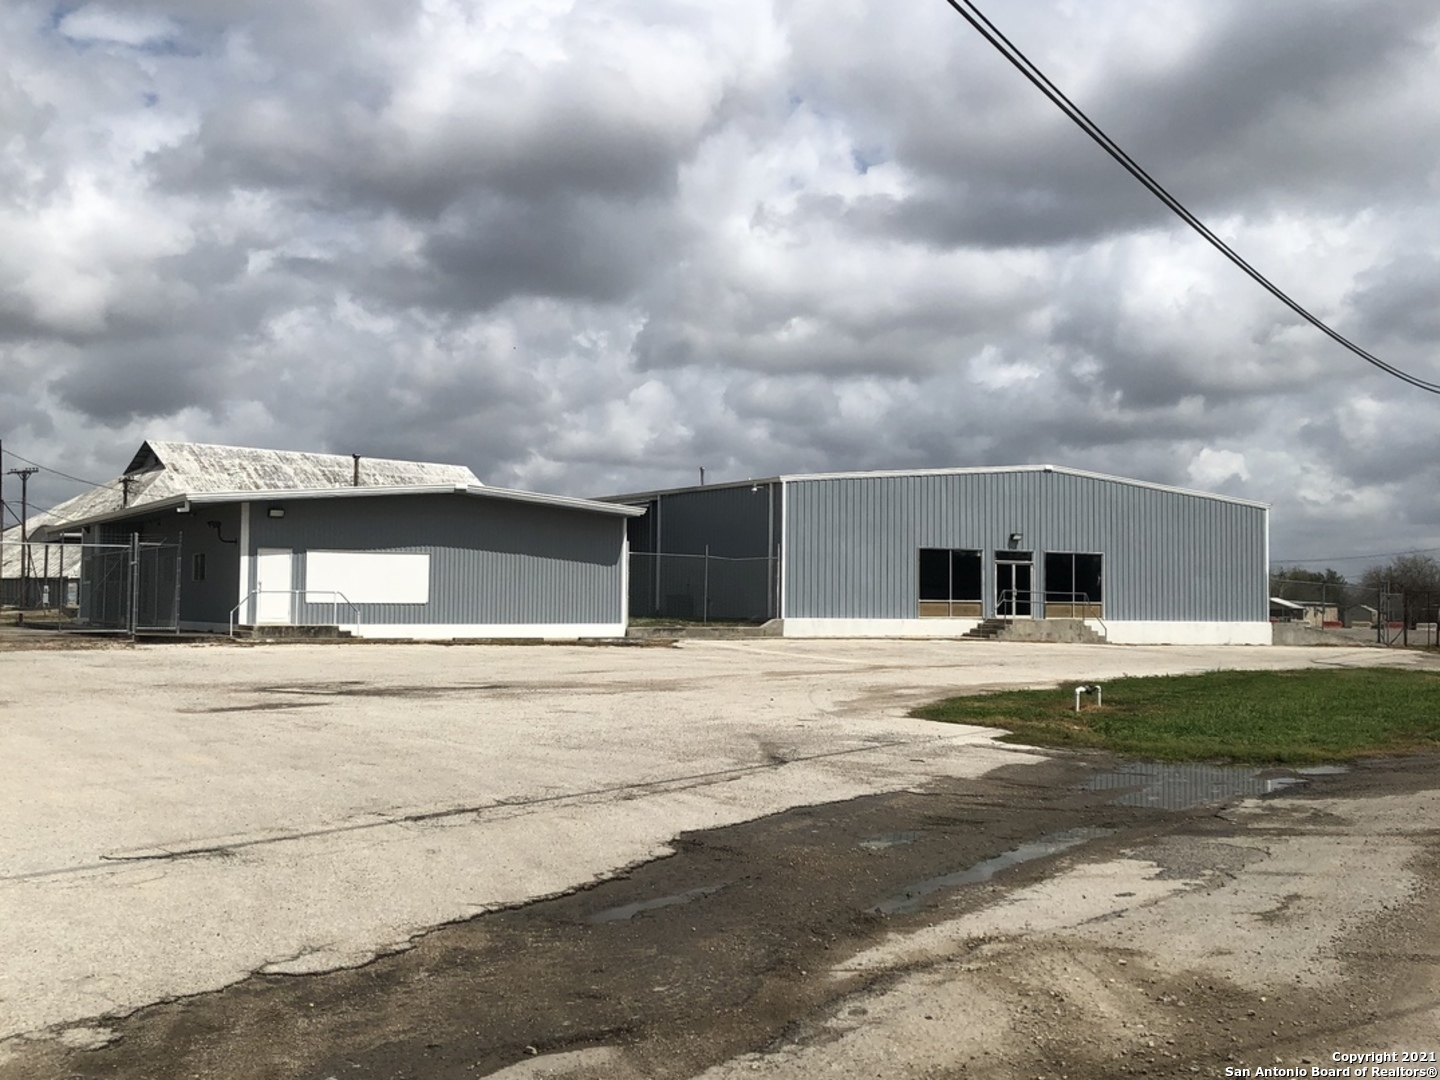 10+ acres within the city limits of Kenedy. Land is totally encompassed by security fencing and much of the acreage is already paved. Large office building, warehouses, loading docks, storage buildings and plenty of parking. City utilities. Easy access to State Hwy 72. This facility used to be known as the Kenedy Farmers Co-Operative years ago, great location with plenty of room to expand if needed within the fencing. Current owners have done many imporvements